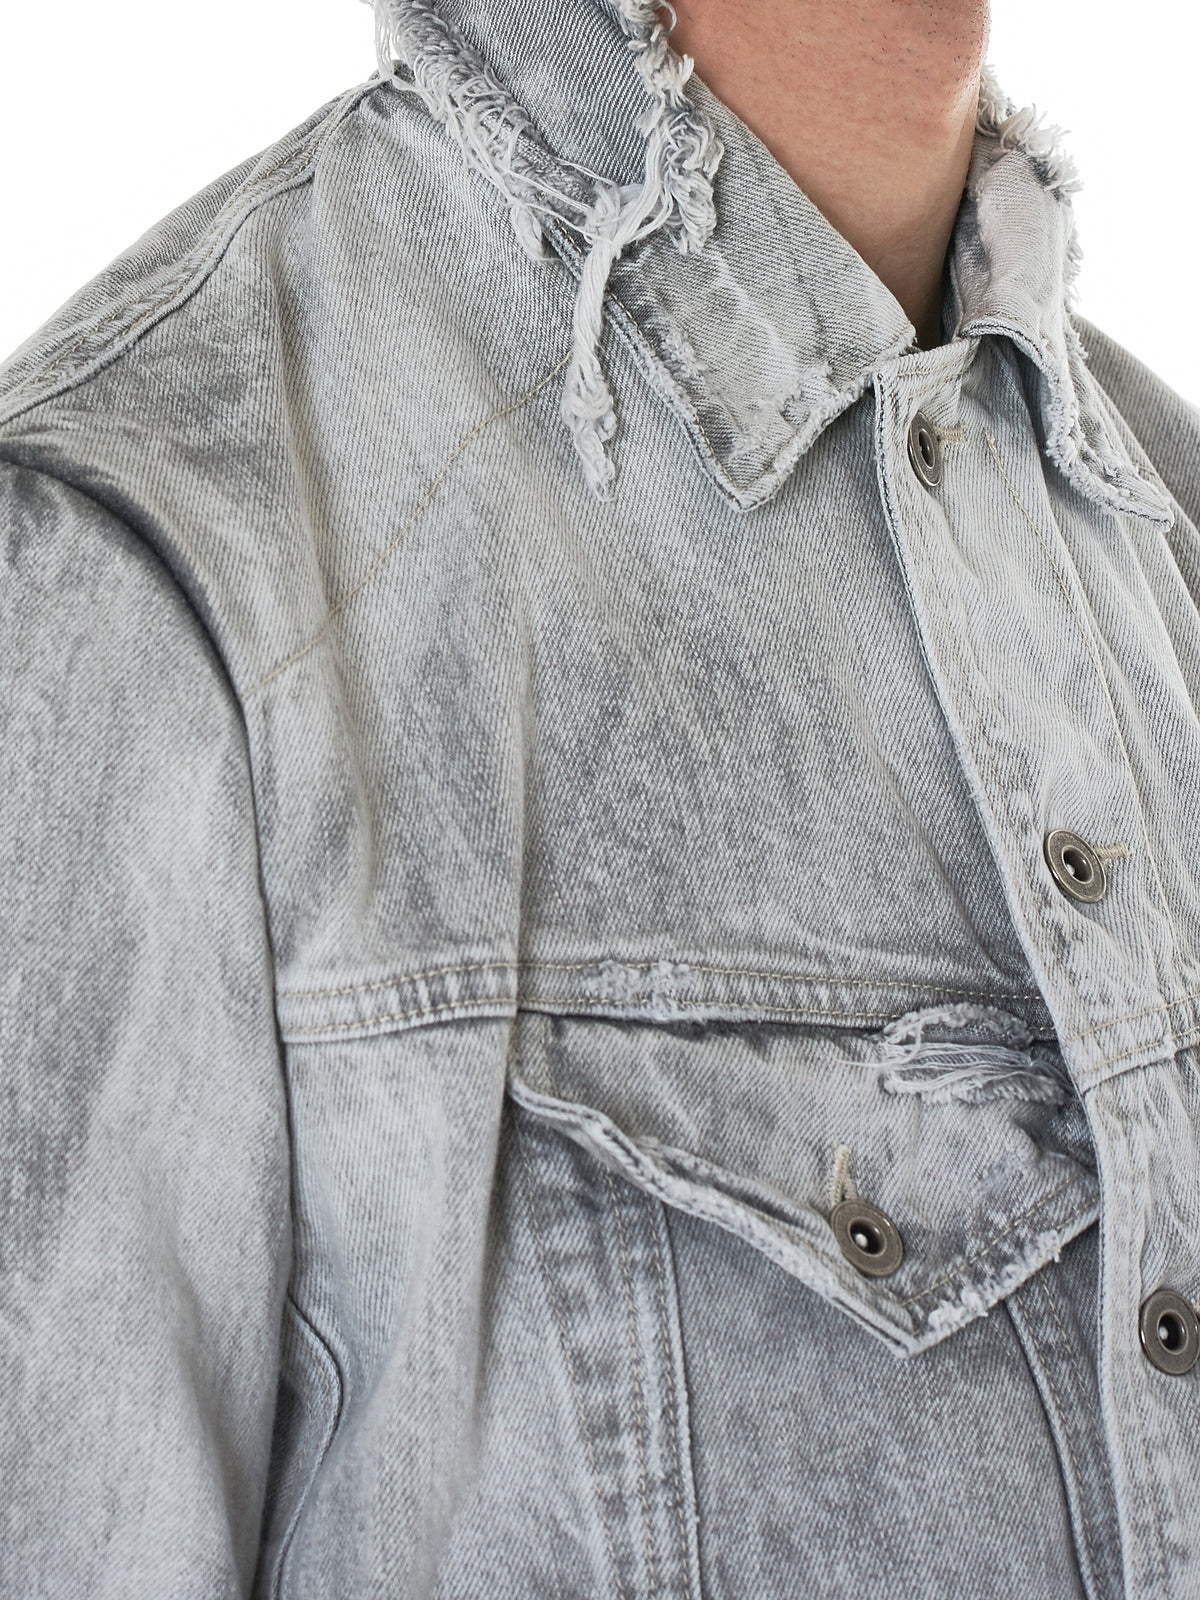 Distressed Denim Jacket (007BLM30-BLUE)